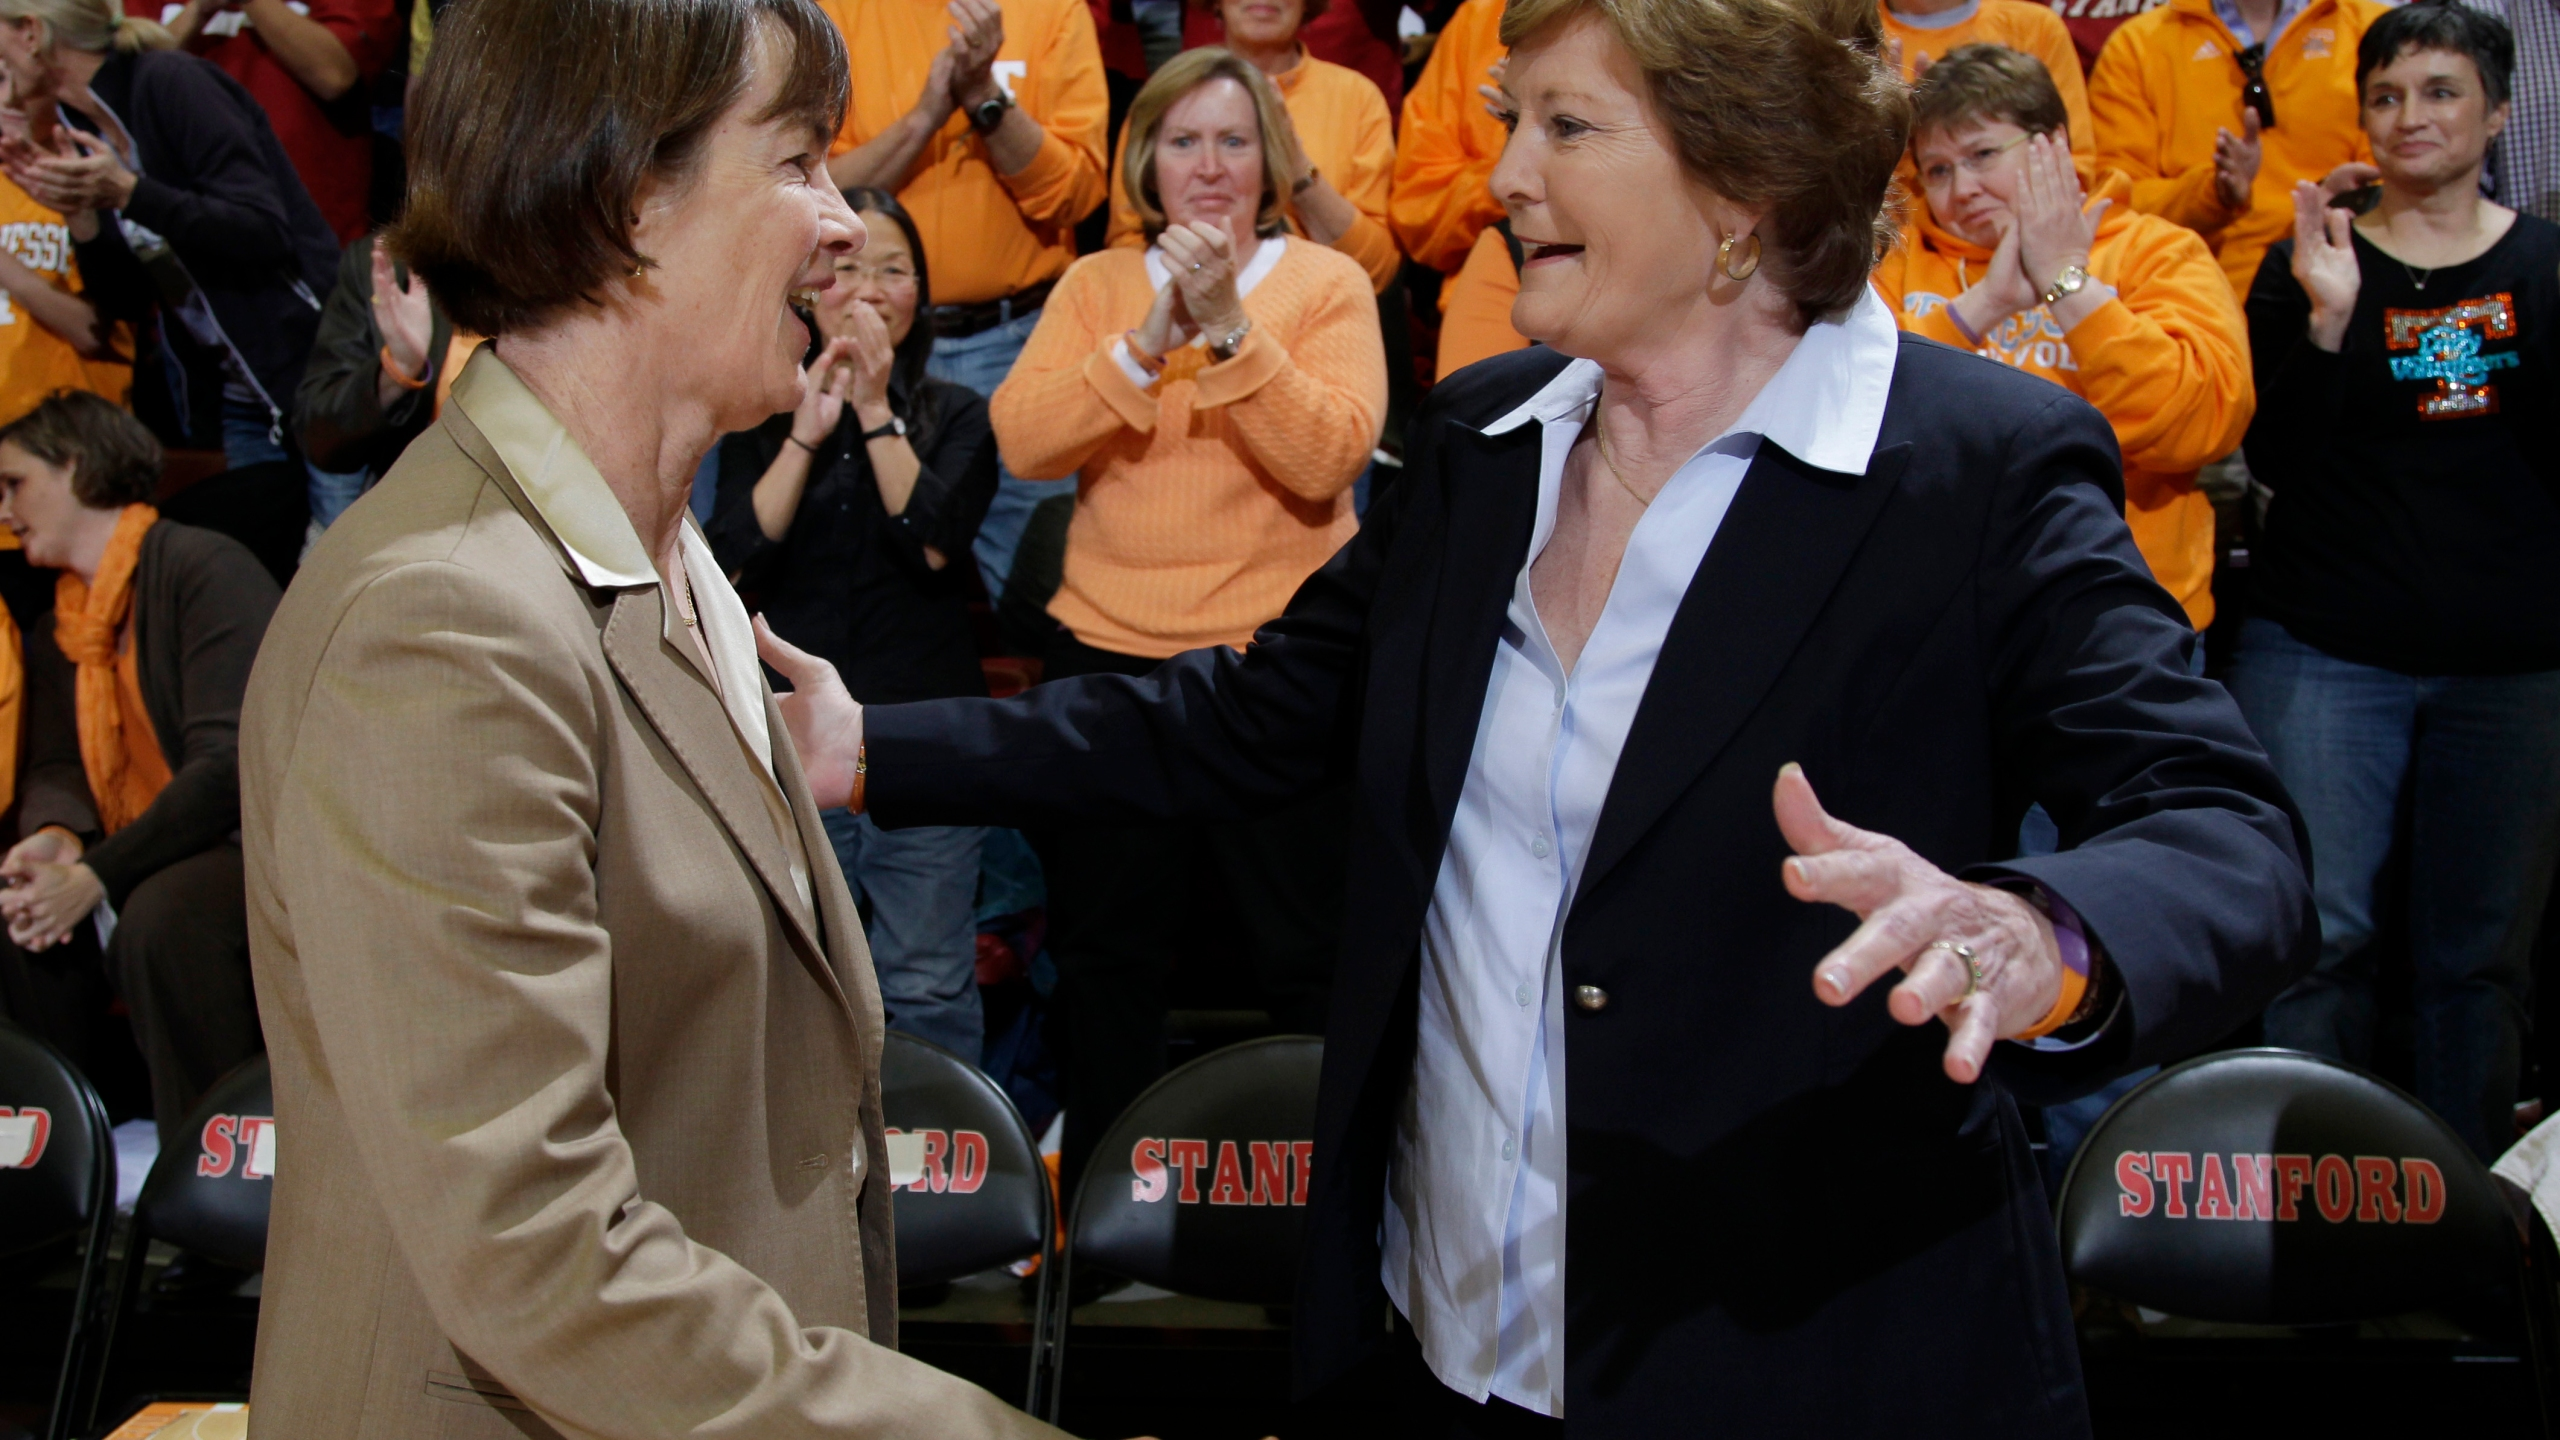 Stanford head coach Tara VanDerveer, Tennessee head coach Pat Summitt